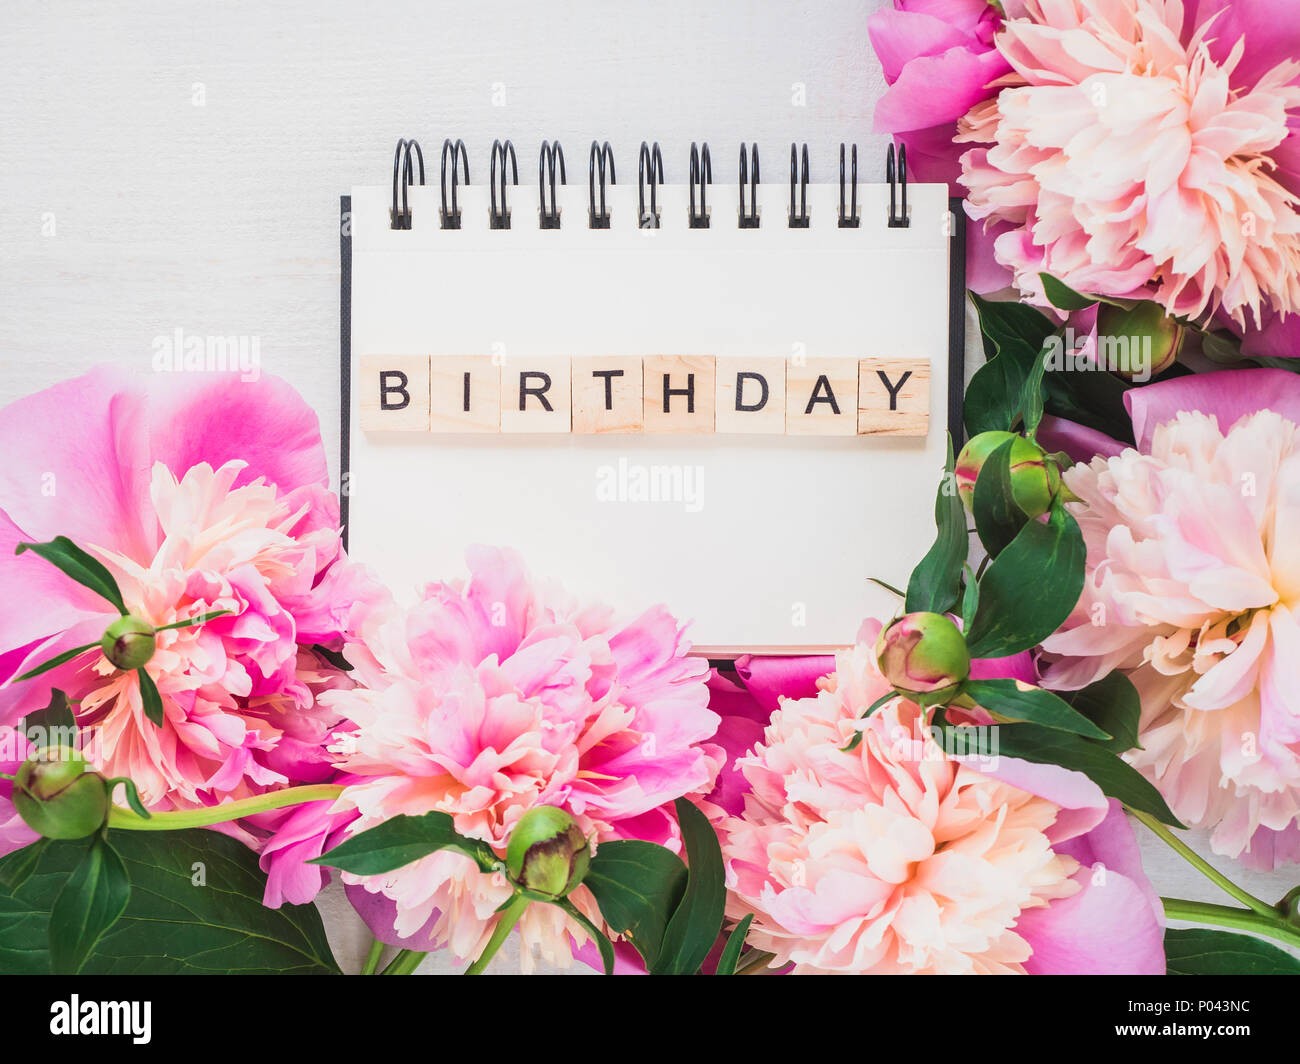 Blank Notebook Page With Birthday Greetings On The Background Of The